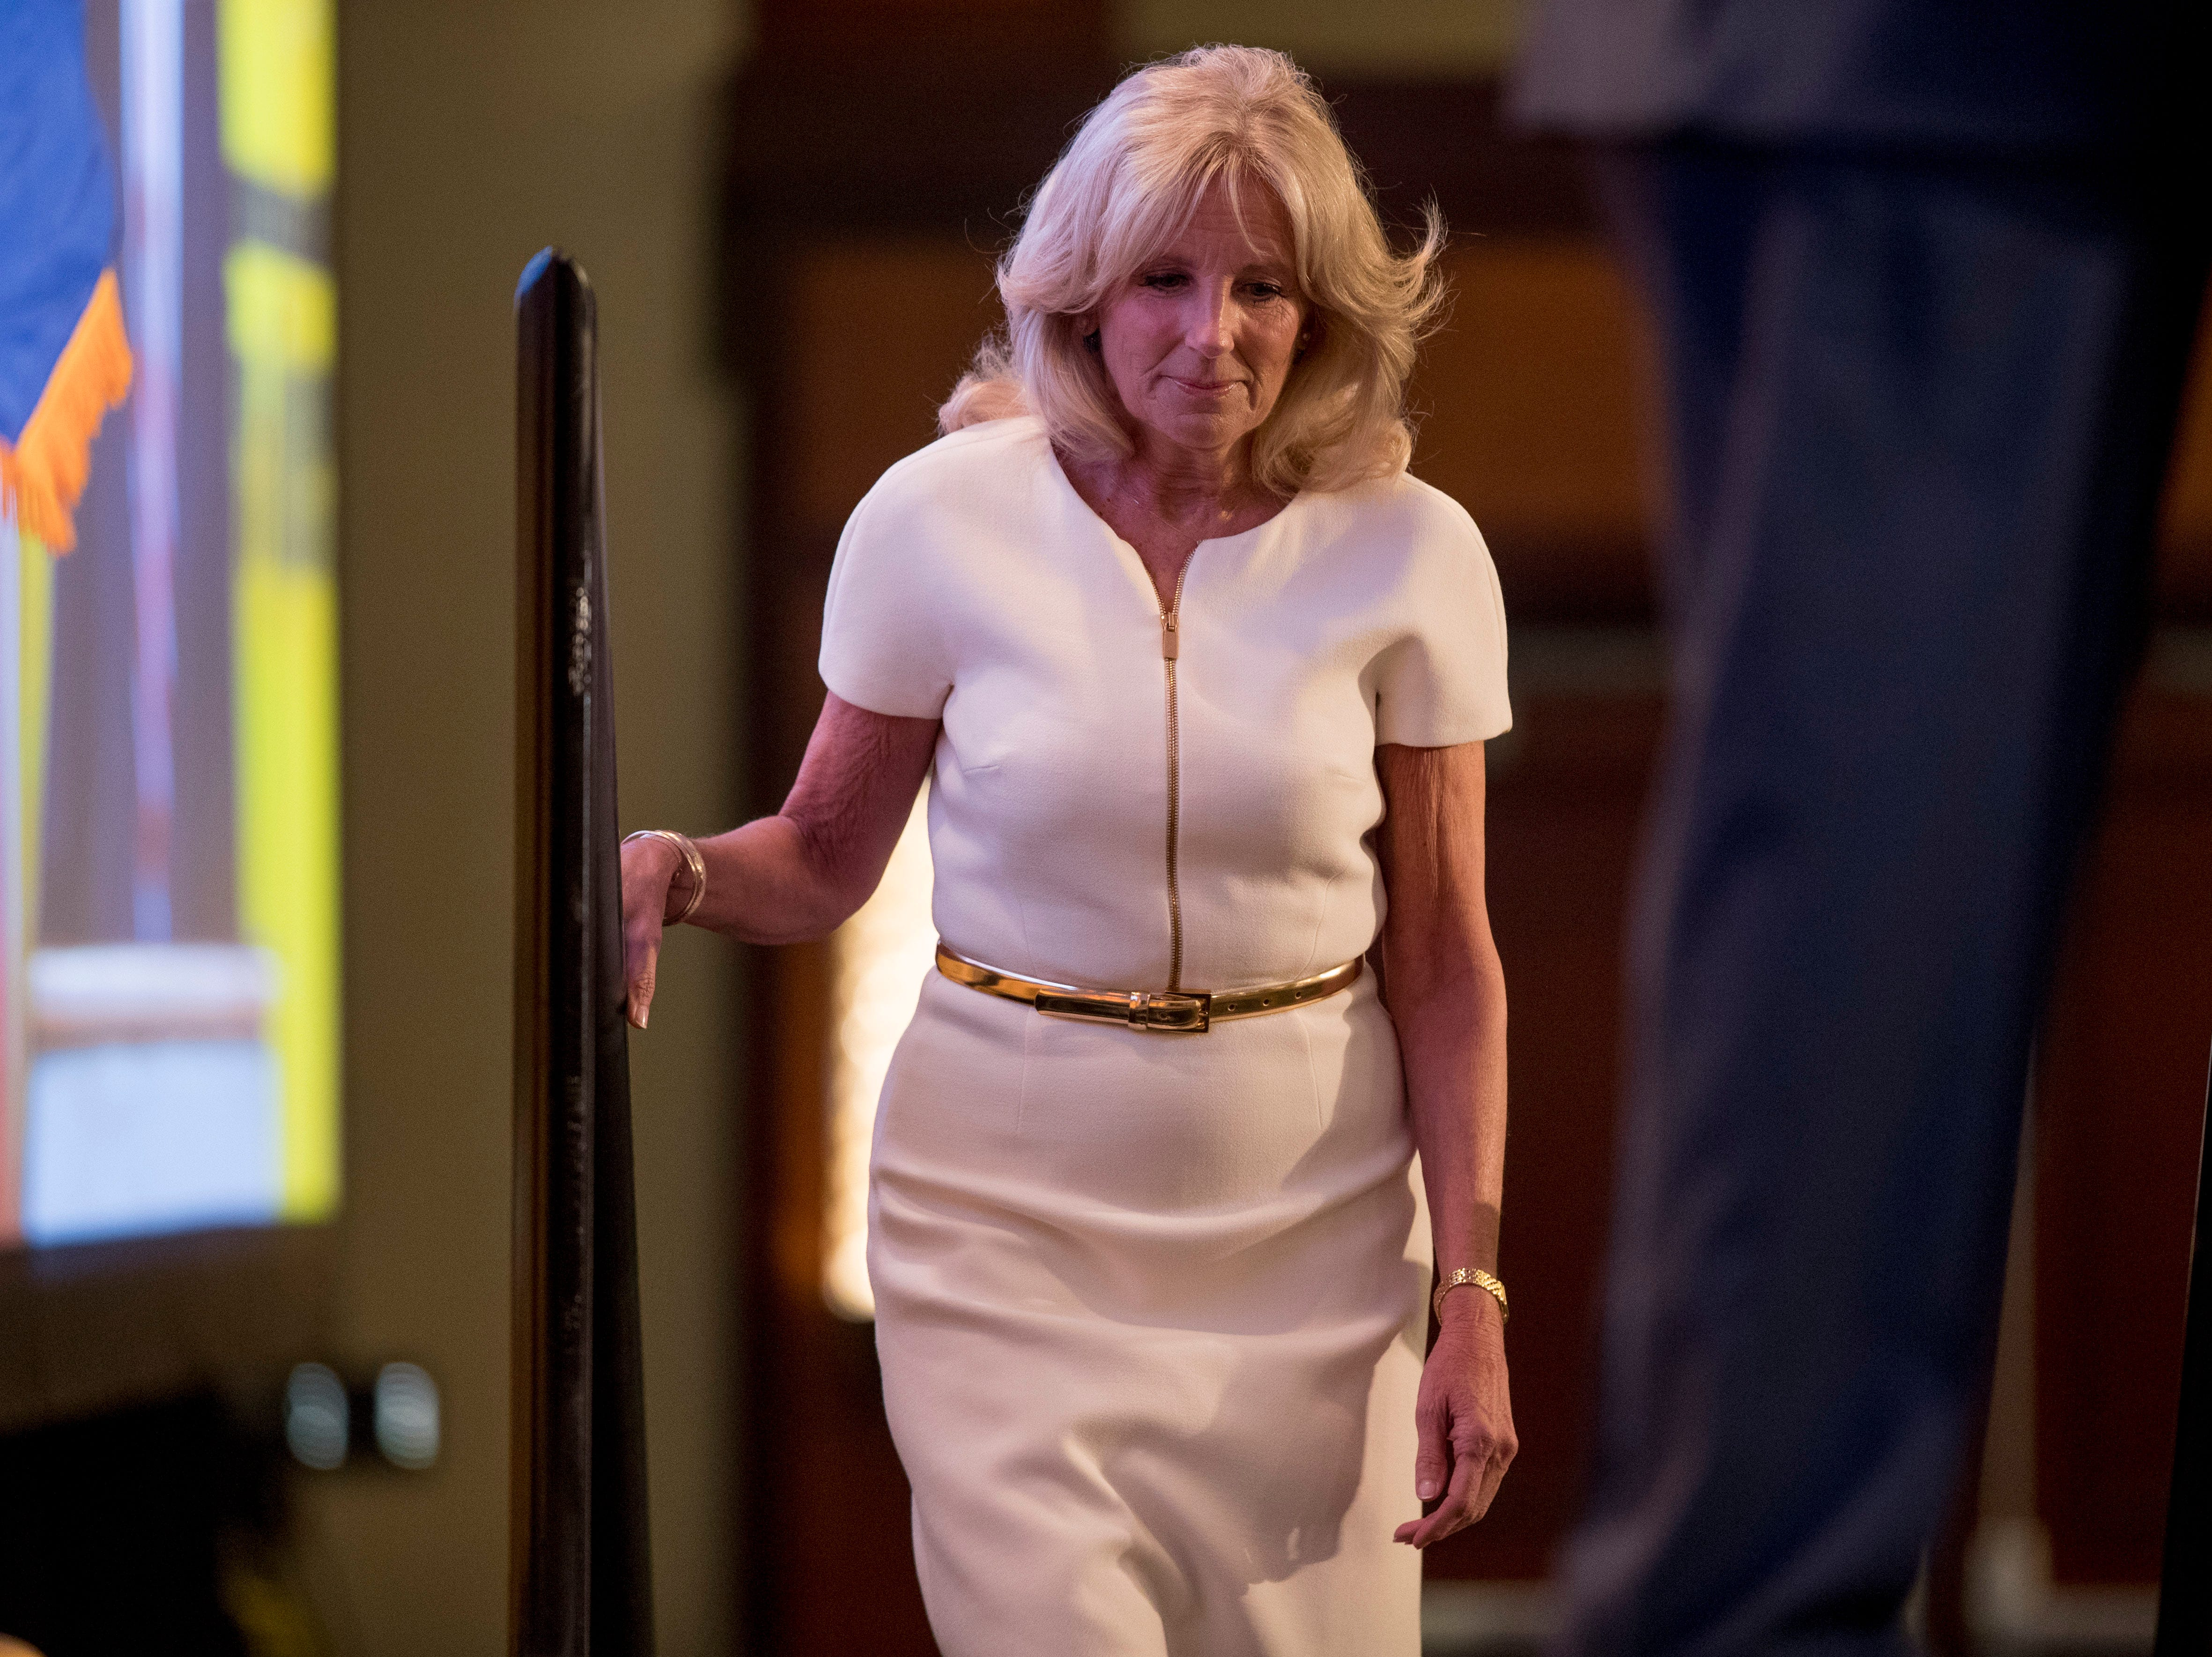 Former Second Lady of the United States Jill Biden takes the stage before former Vice President Joe Biden speaks to the International Association of Firefighters at the Hyatt Regency on Capitol Hill in Washington, Tuesday, March 12, 2019, amid growing expectations he'll soon announce he's running for president. (AP Photo/Andrew Harnik)